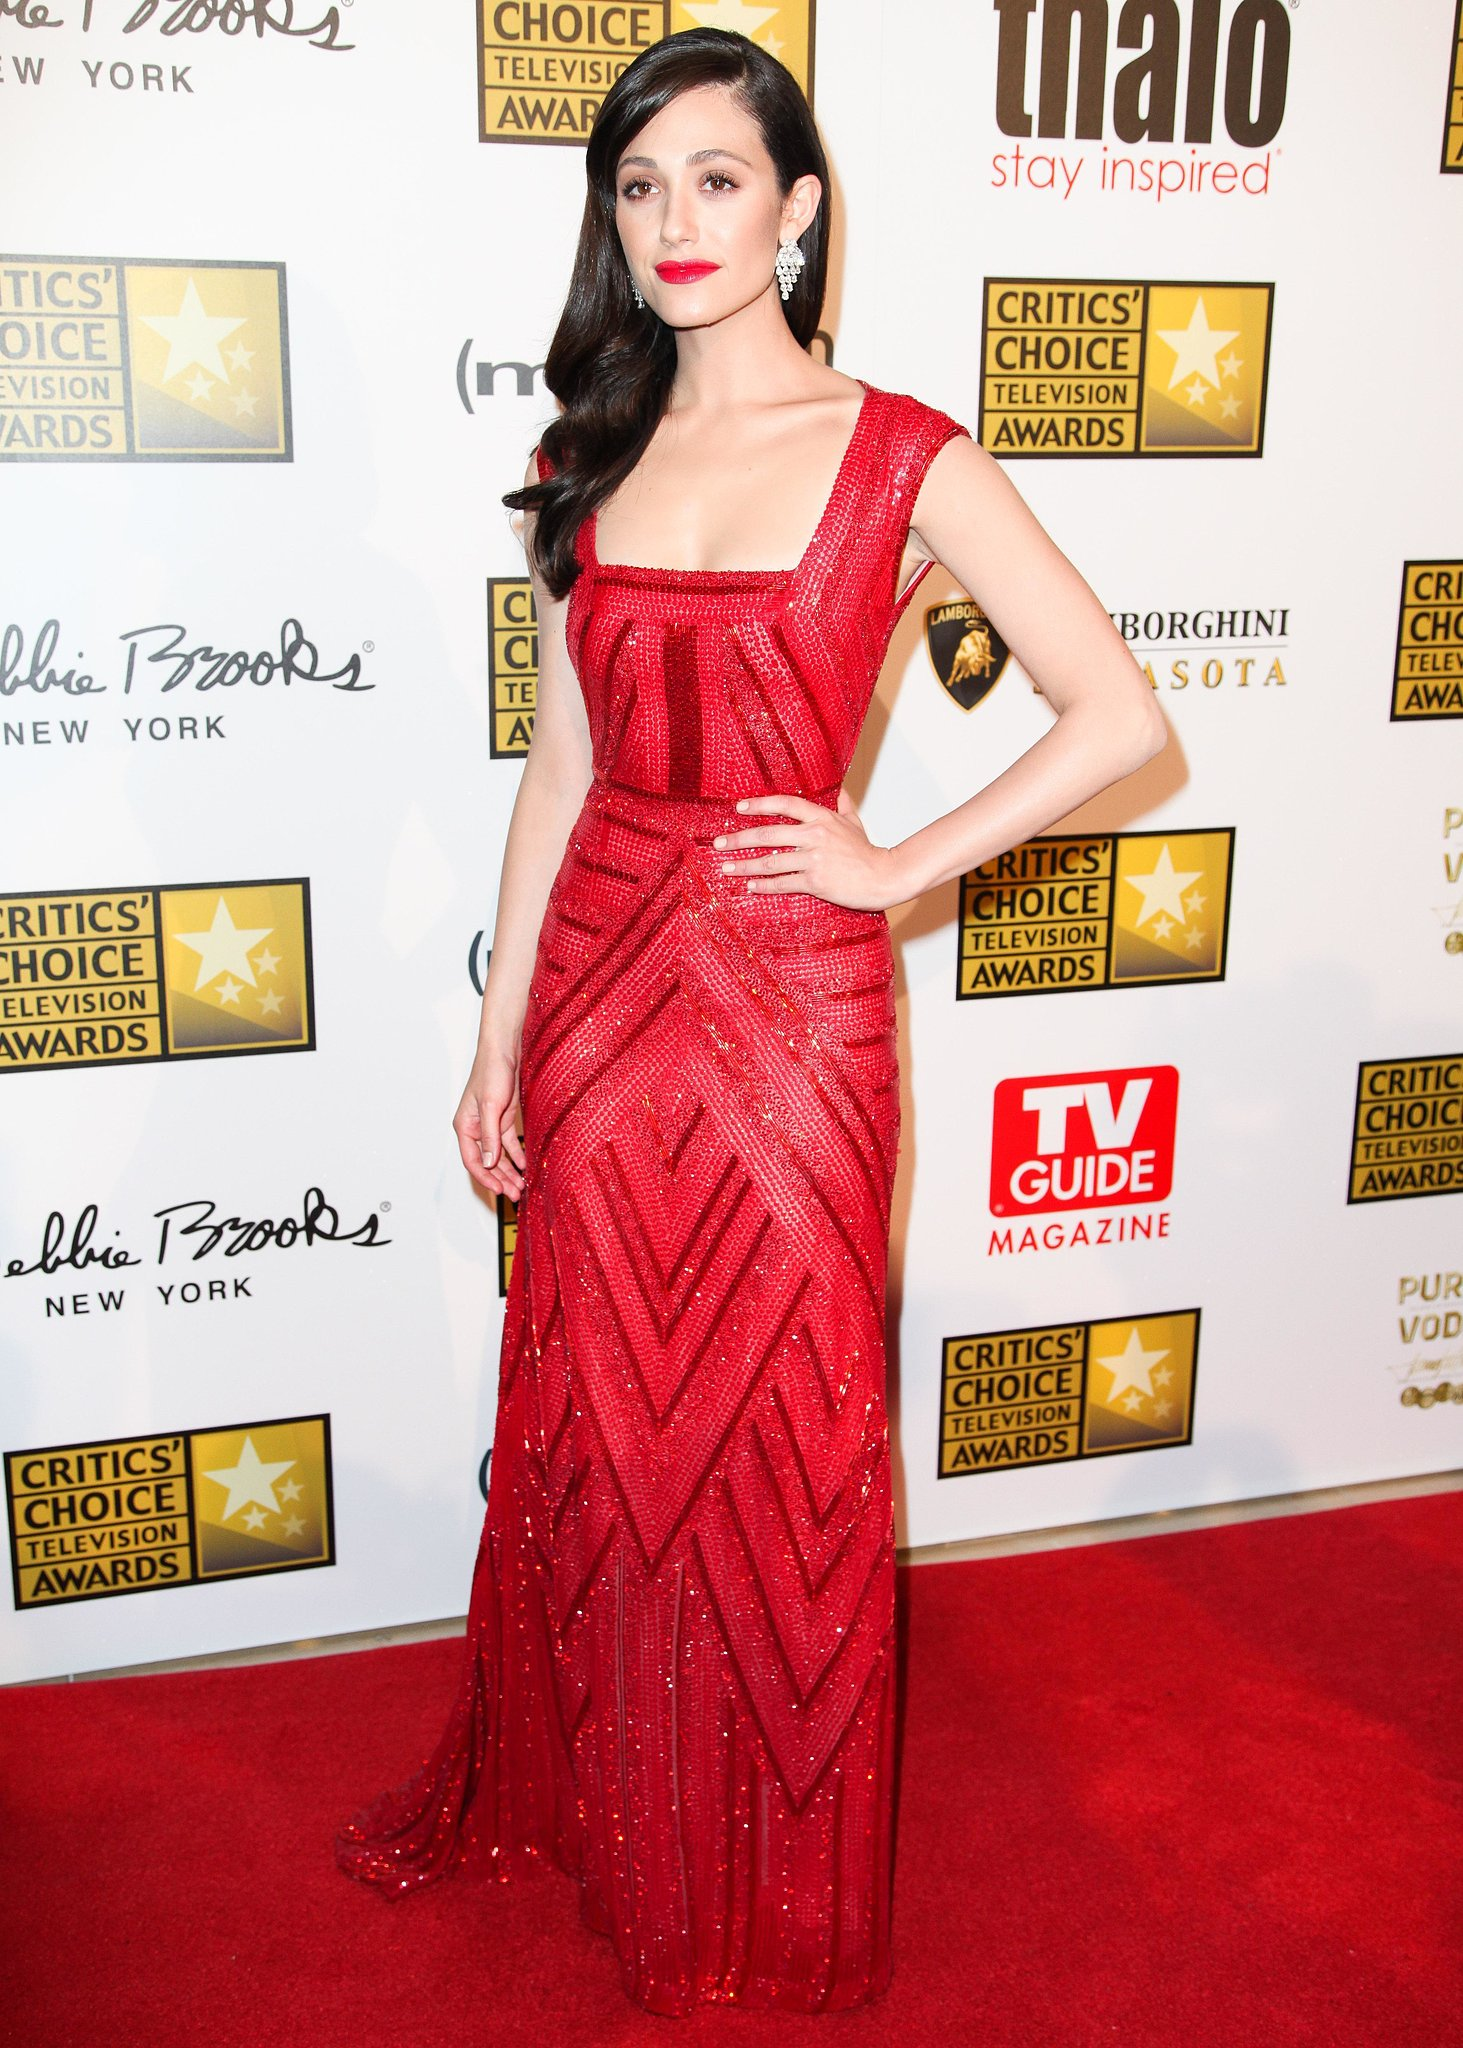 Emmy Rossum at the 2013 Critics' Choice Television Awards in Los Angeles.  Source: Aleks Kocev/BFAnyc.com